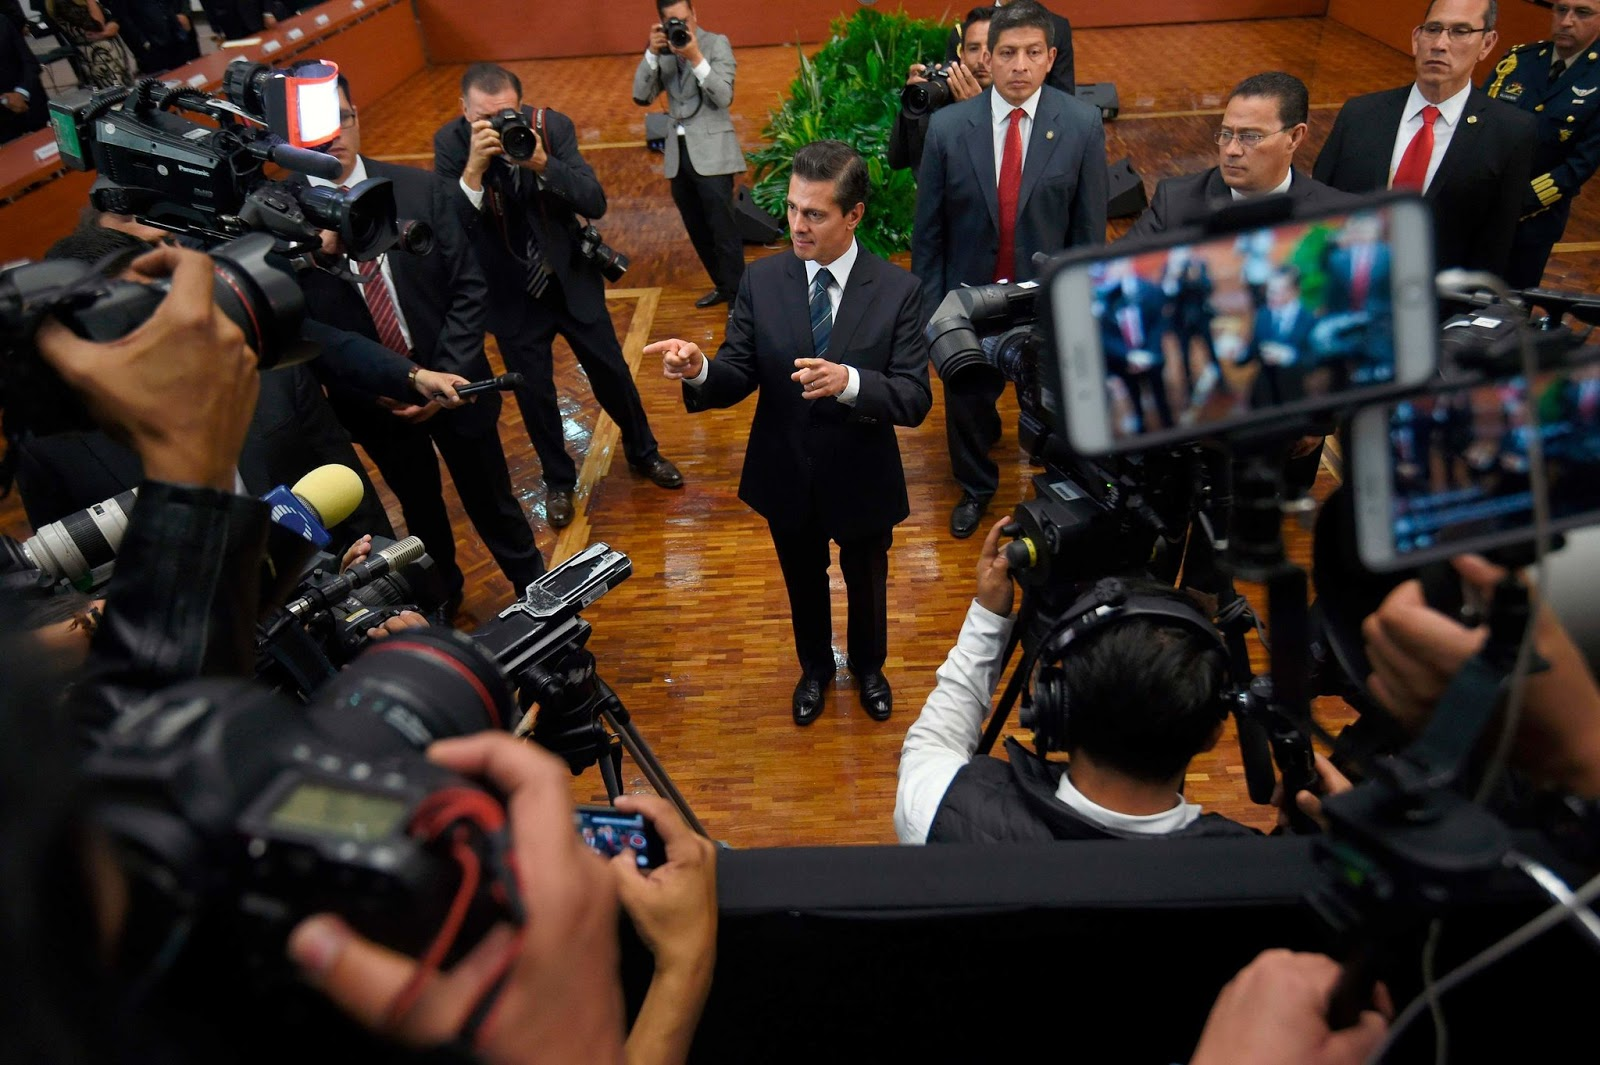 President enrique pe a nieto center vowed last month to take concrete steps to ensure the safety of journalists in mexico